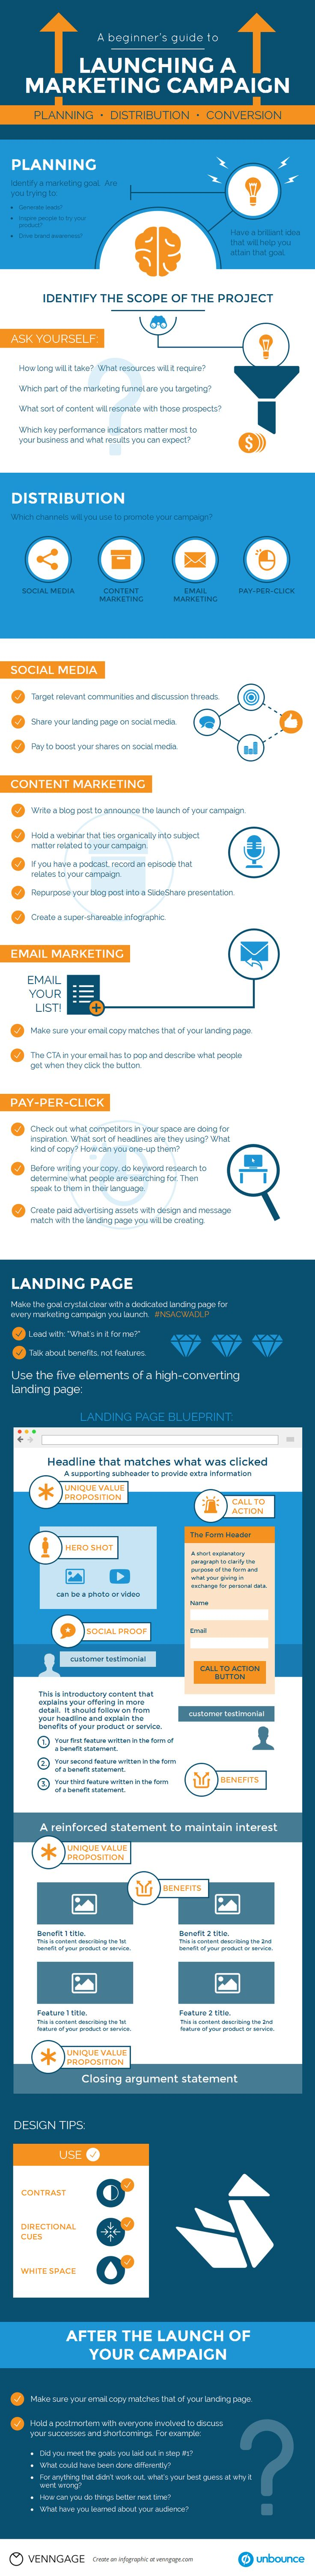 A Beginners Guide to Launching a Successful Marketing Campaign [INFOGRAPHIC]